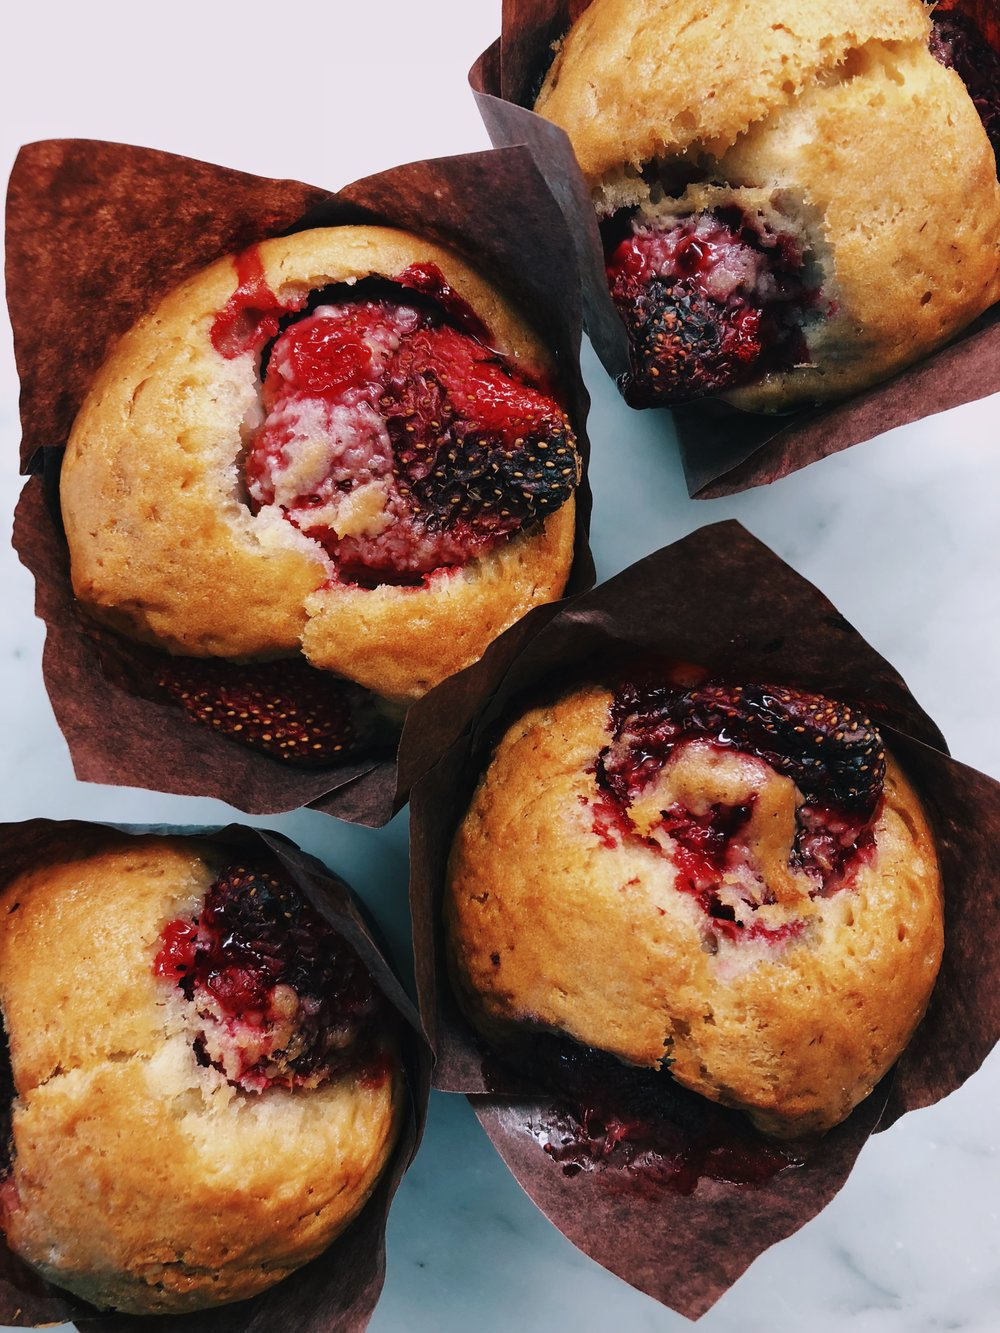 STRAWBERRY BANANA MUFFINS - INGREDIENTS3 very ripe bananas1 3/4 cups gluten free flour1 tsp baking soda1 tsp cinnamon1 tsp vanilla extract1/2 tsp salt1 cup coconut sugar1/2 cup melted coconut oil (or avocado oil)2 large eggs1 3/4 cups roughly chopped organic strawberries